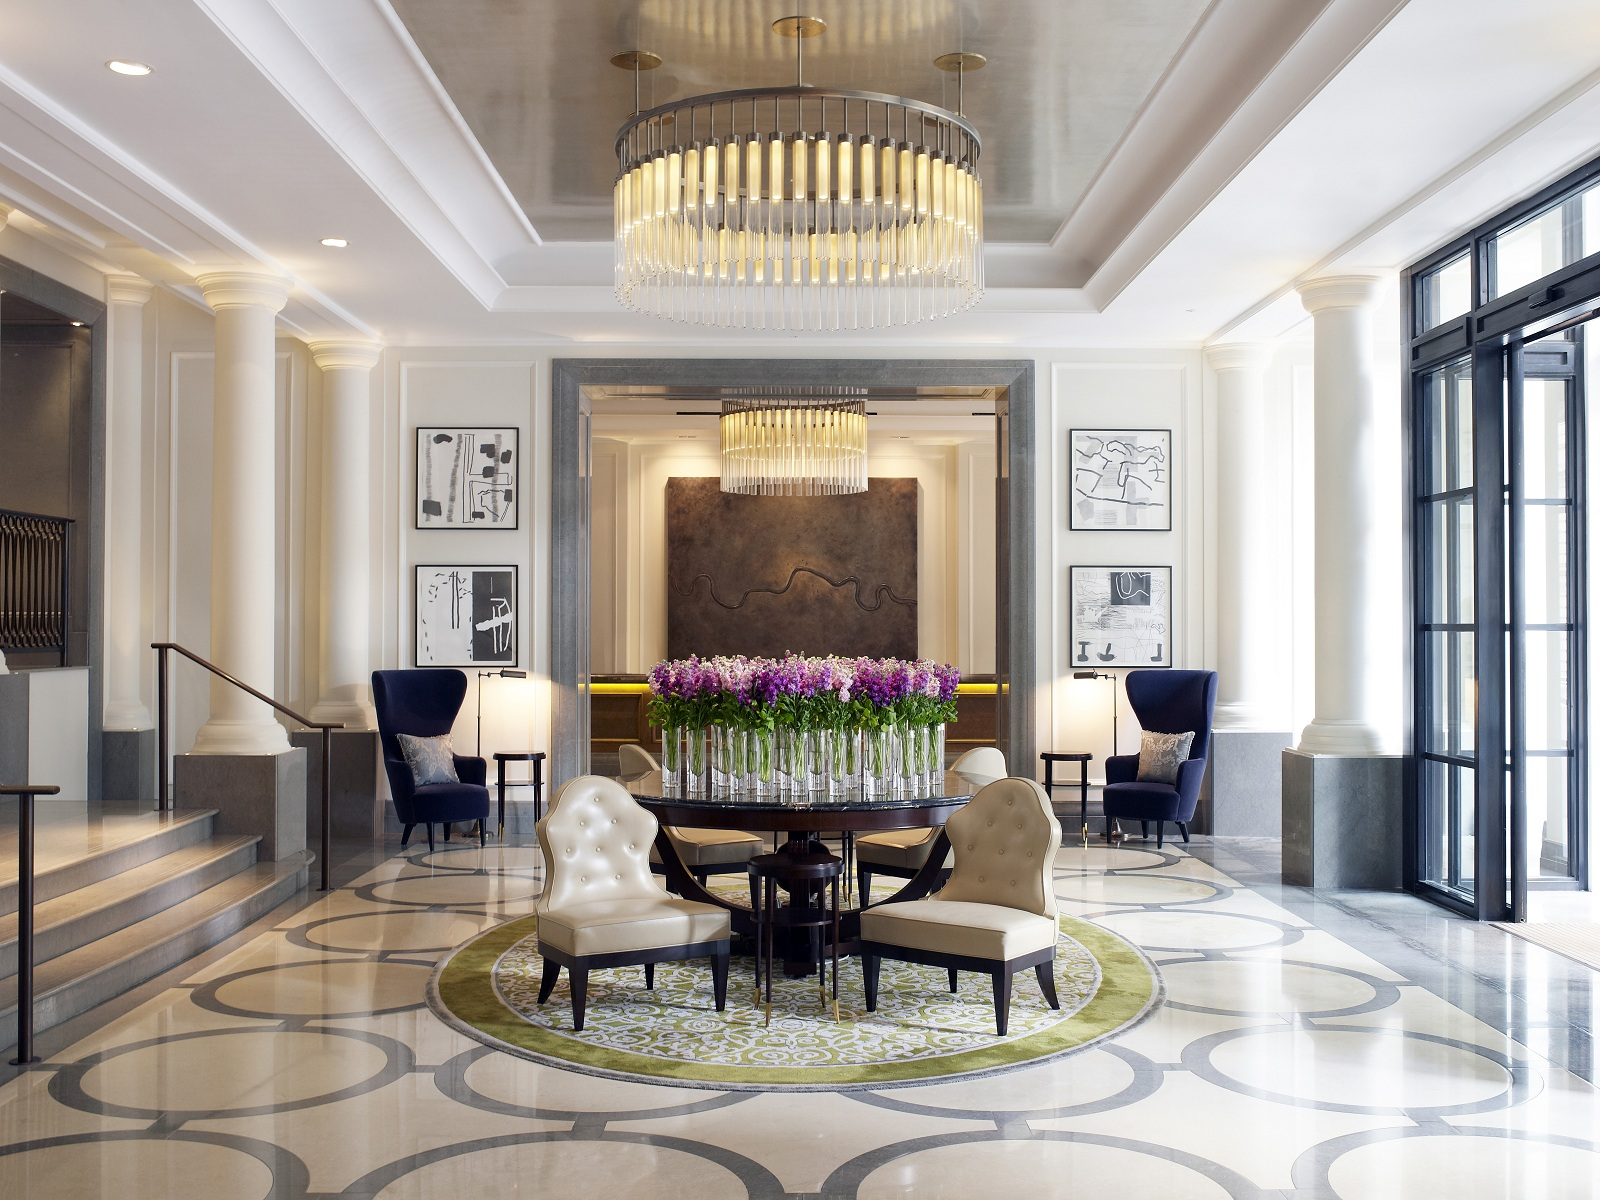 Best new hotel london uk corinthia hotel entrance lobby for Best modern hotels in london